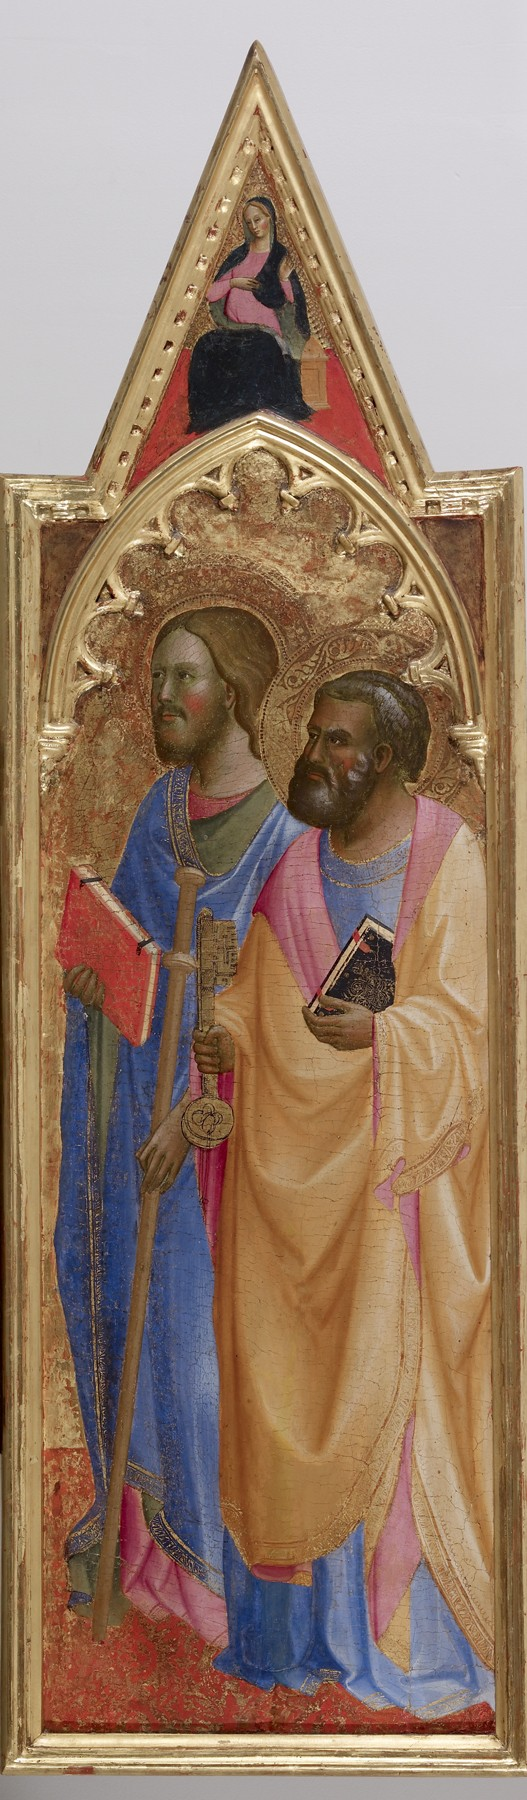 Saint James the Greater and Saint Peter